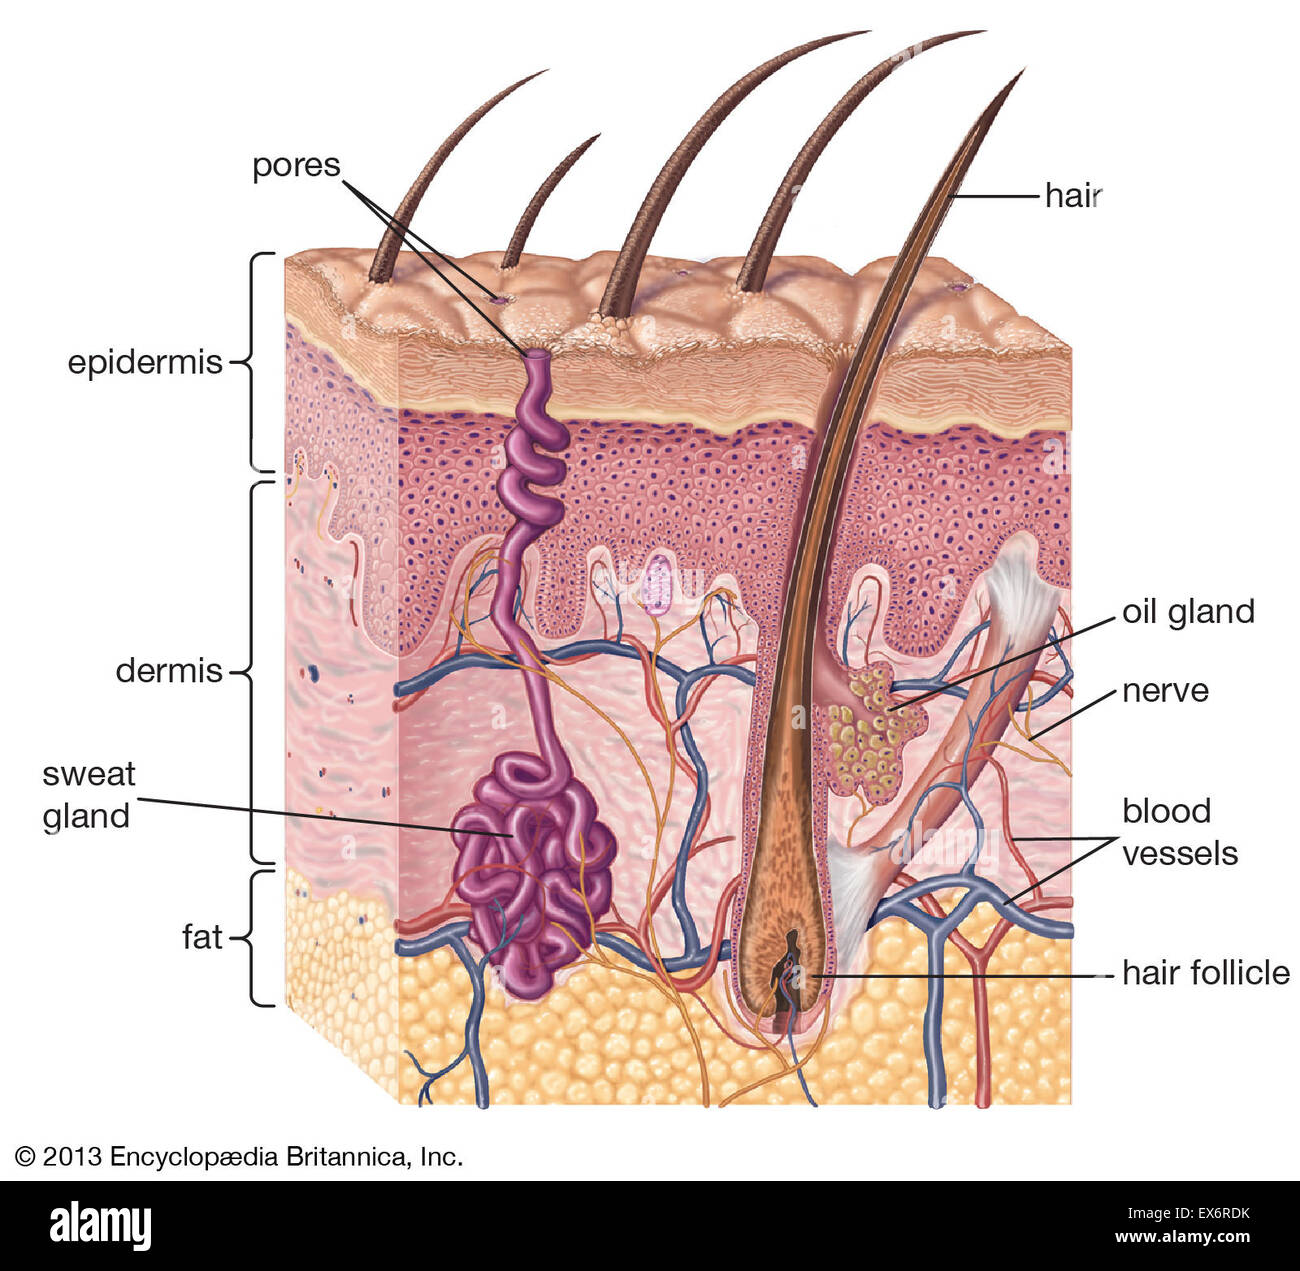 Human Skin Anatomy Cross Section Stock Photos & Human Skin Anatomy ...